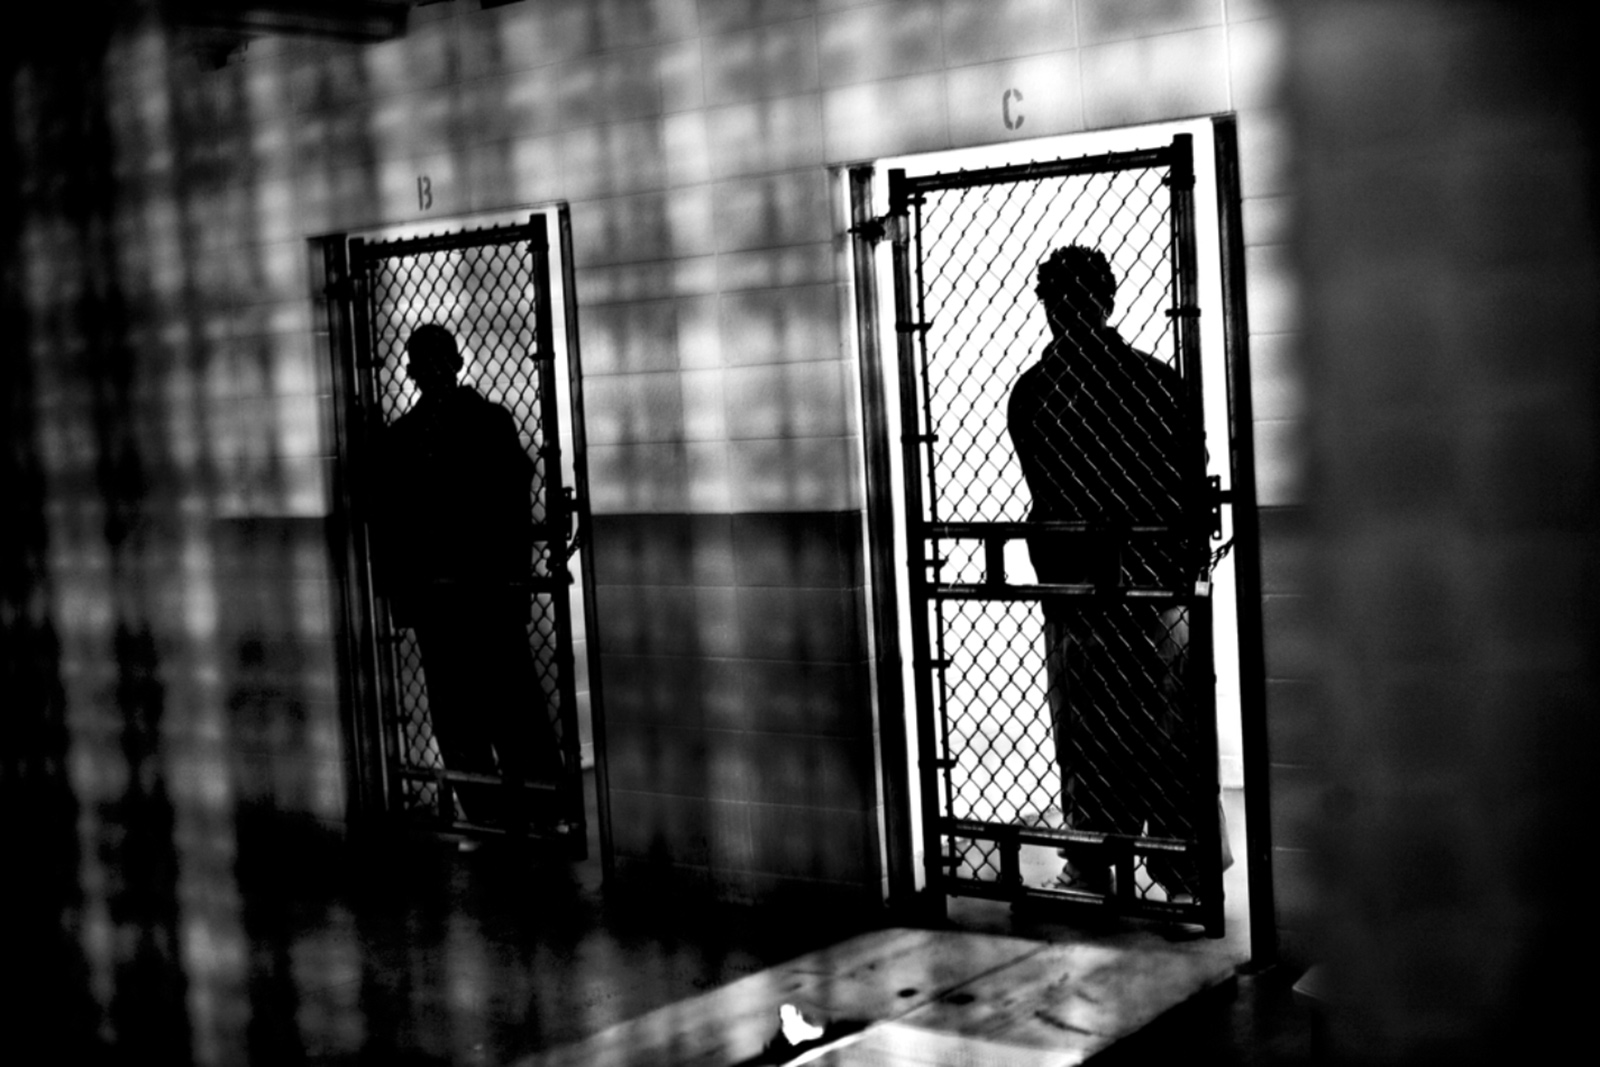 Teenagers held in confinement cells at a state juvenile detention center, St. Charles, Illinois, 2009